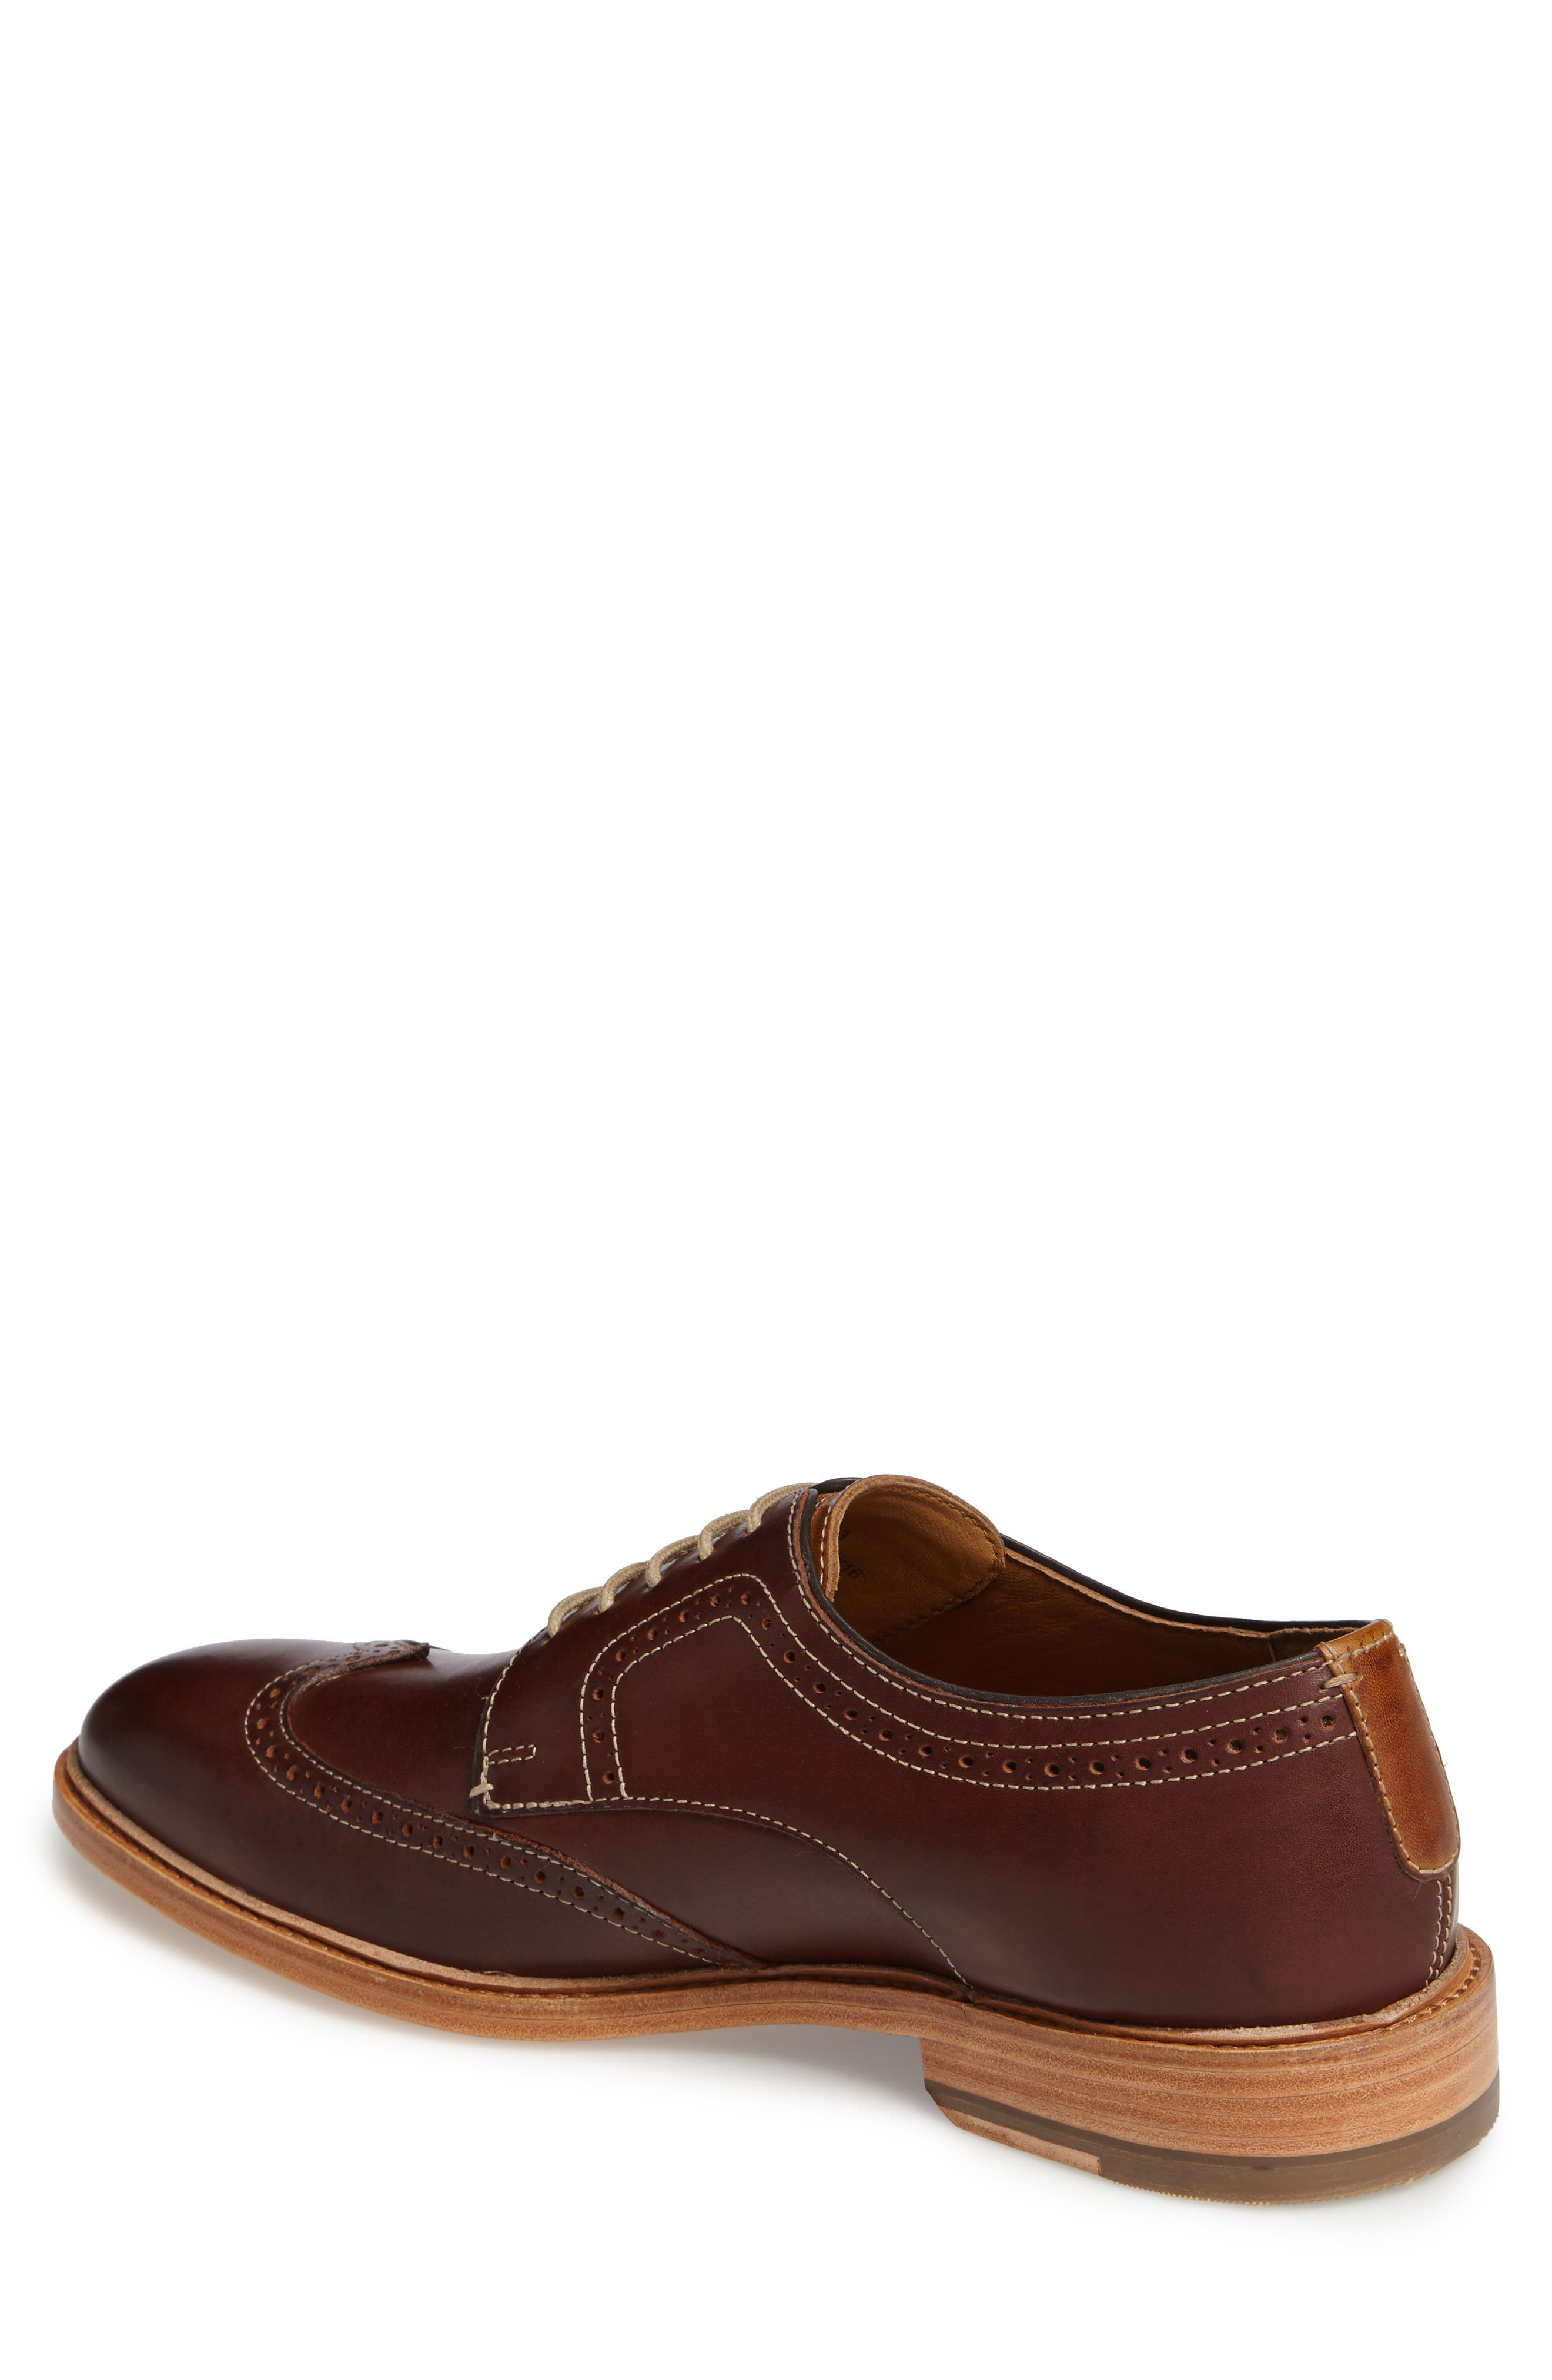 Campbell Wingtip,                             Alternate thumbnail 2, color,                             206